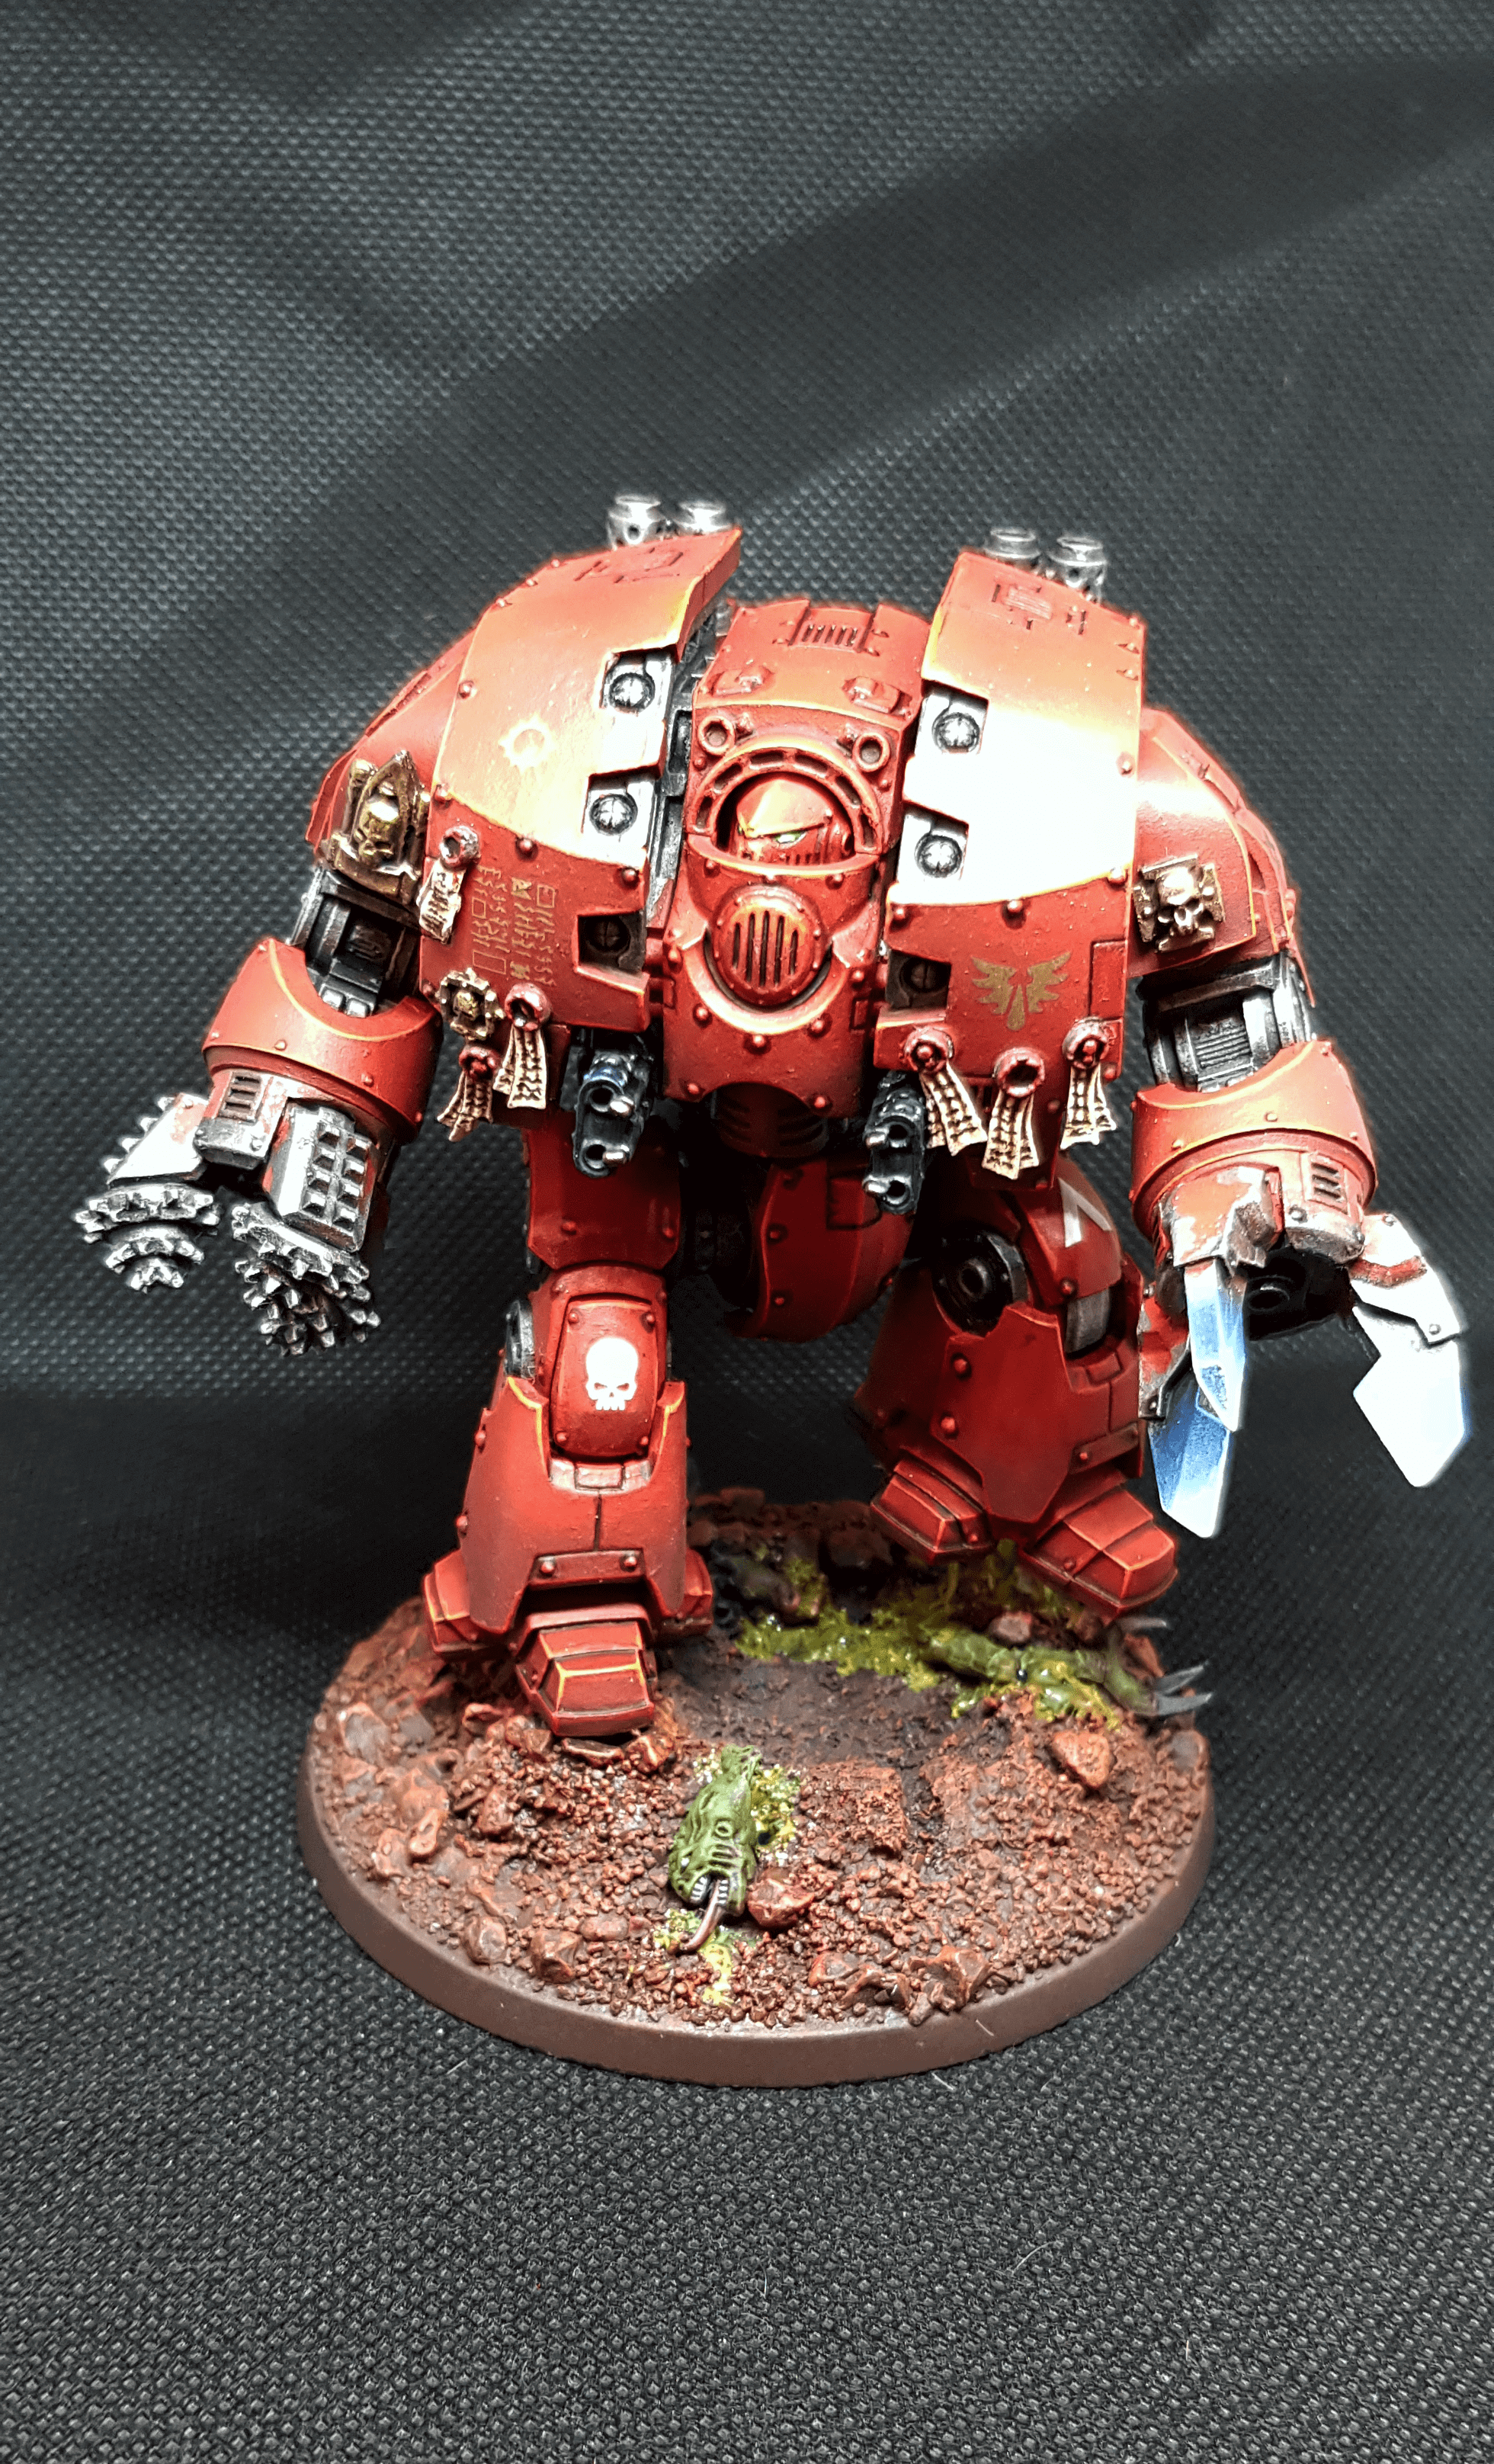 Venerable Brother Marcellus, the Red Wrath